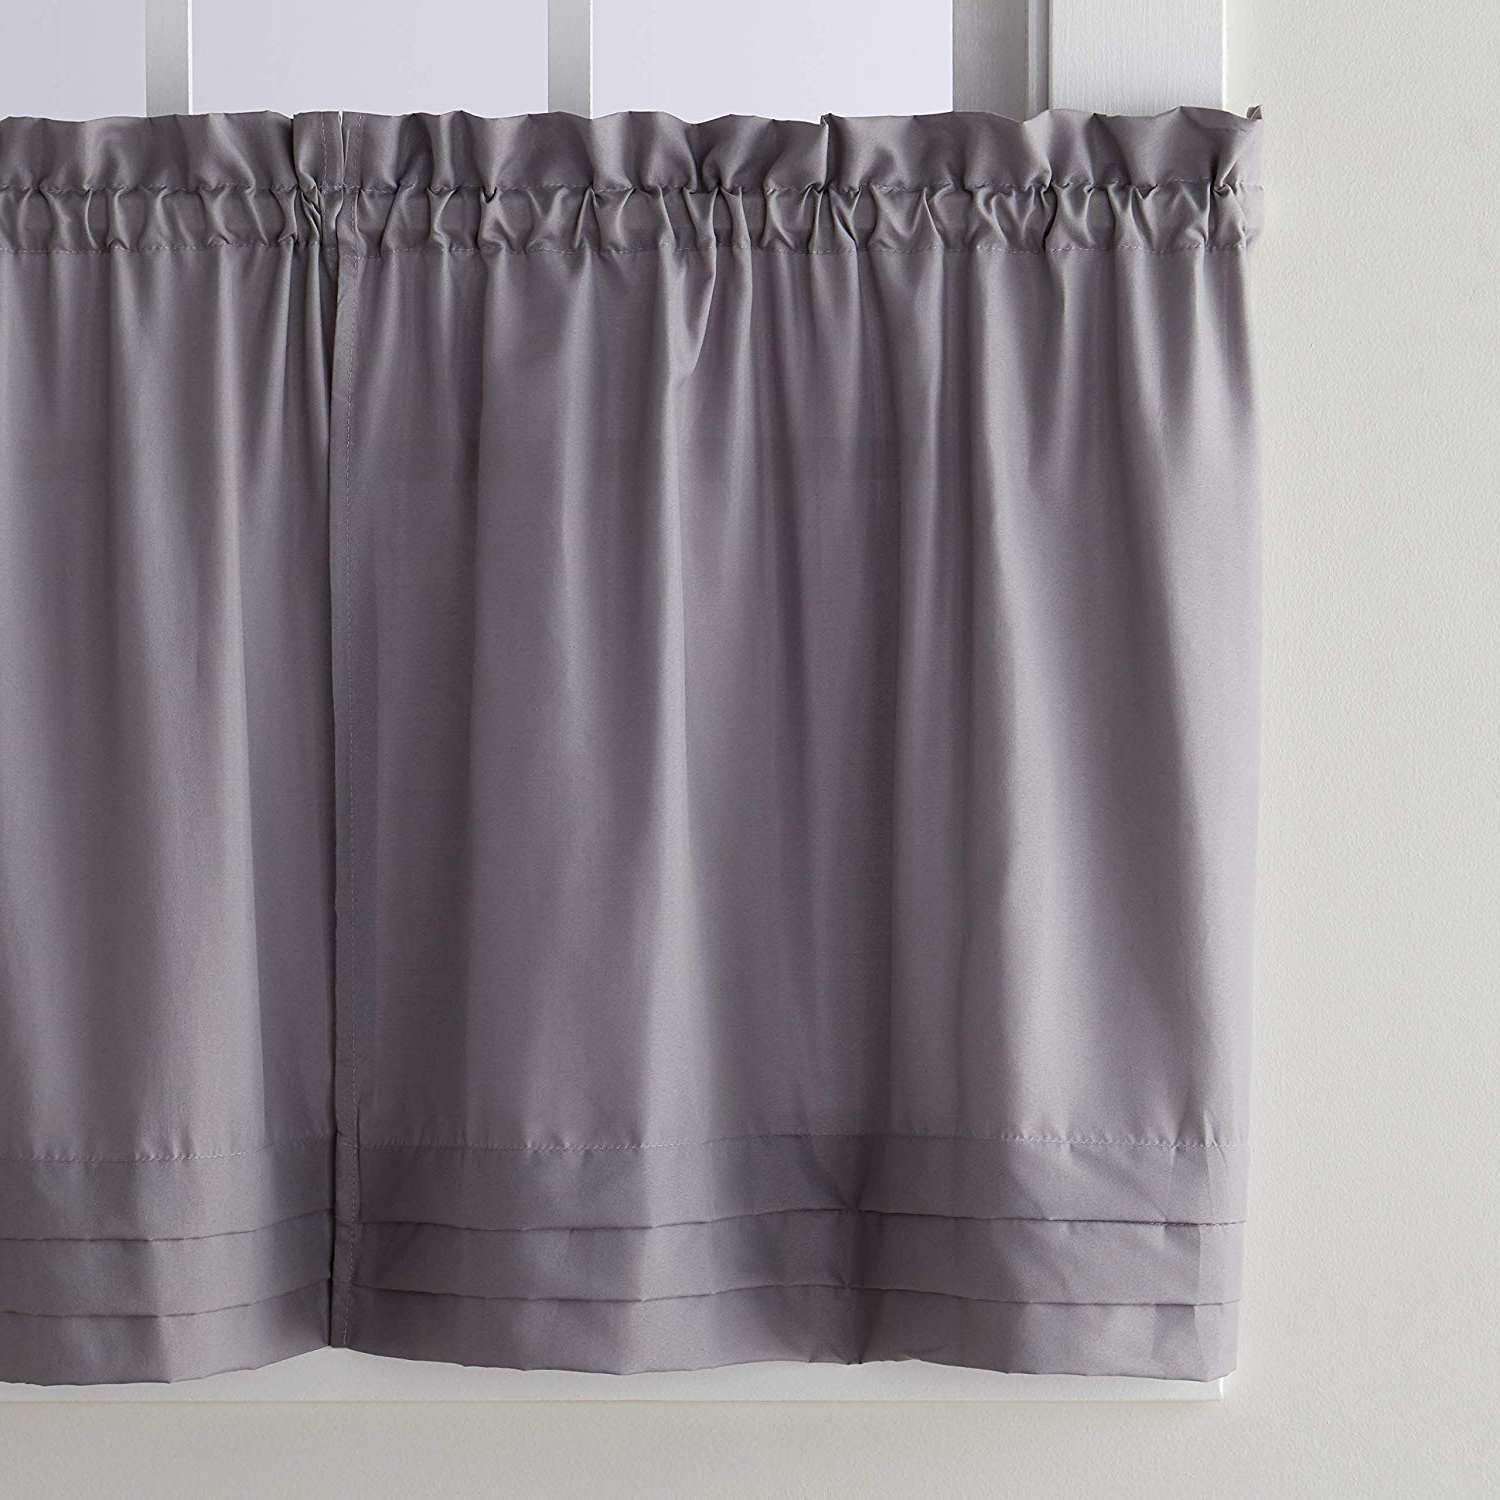 Fashionable Dove Gray Curtain Tier Pairs Inside Skl Homesaturday Knight Ltd. Holden Tier Curtain Pair, Dove Gray, 57  Inches X 36 Inches (Gallery 13 of 20)